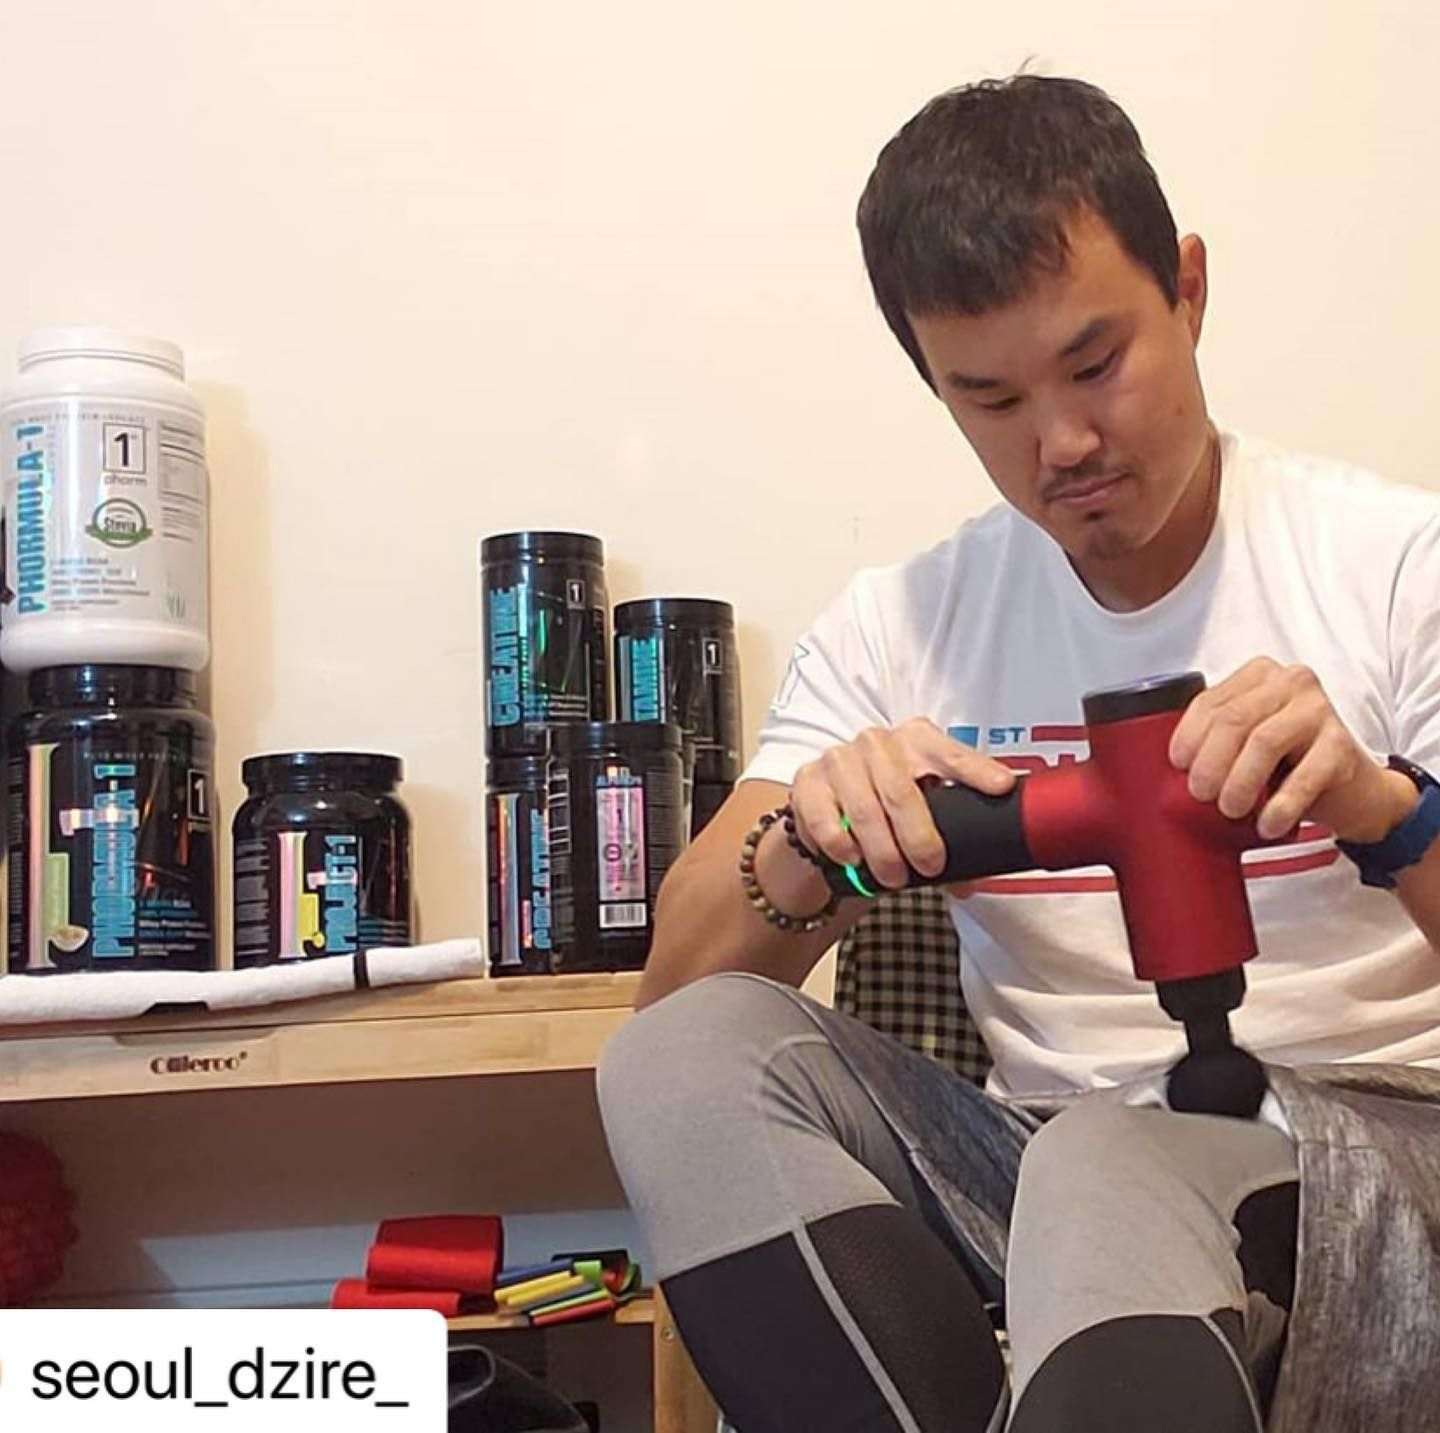 Timely Healthy Lifestyle Tips Thank You Seoul Dzire